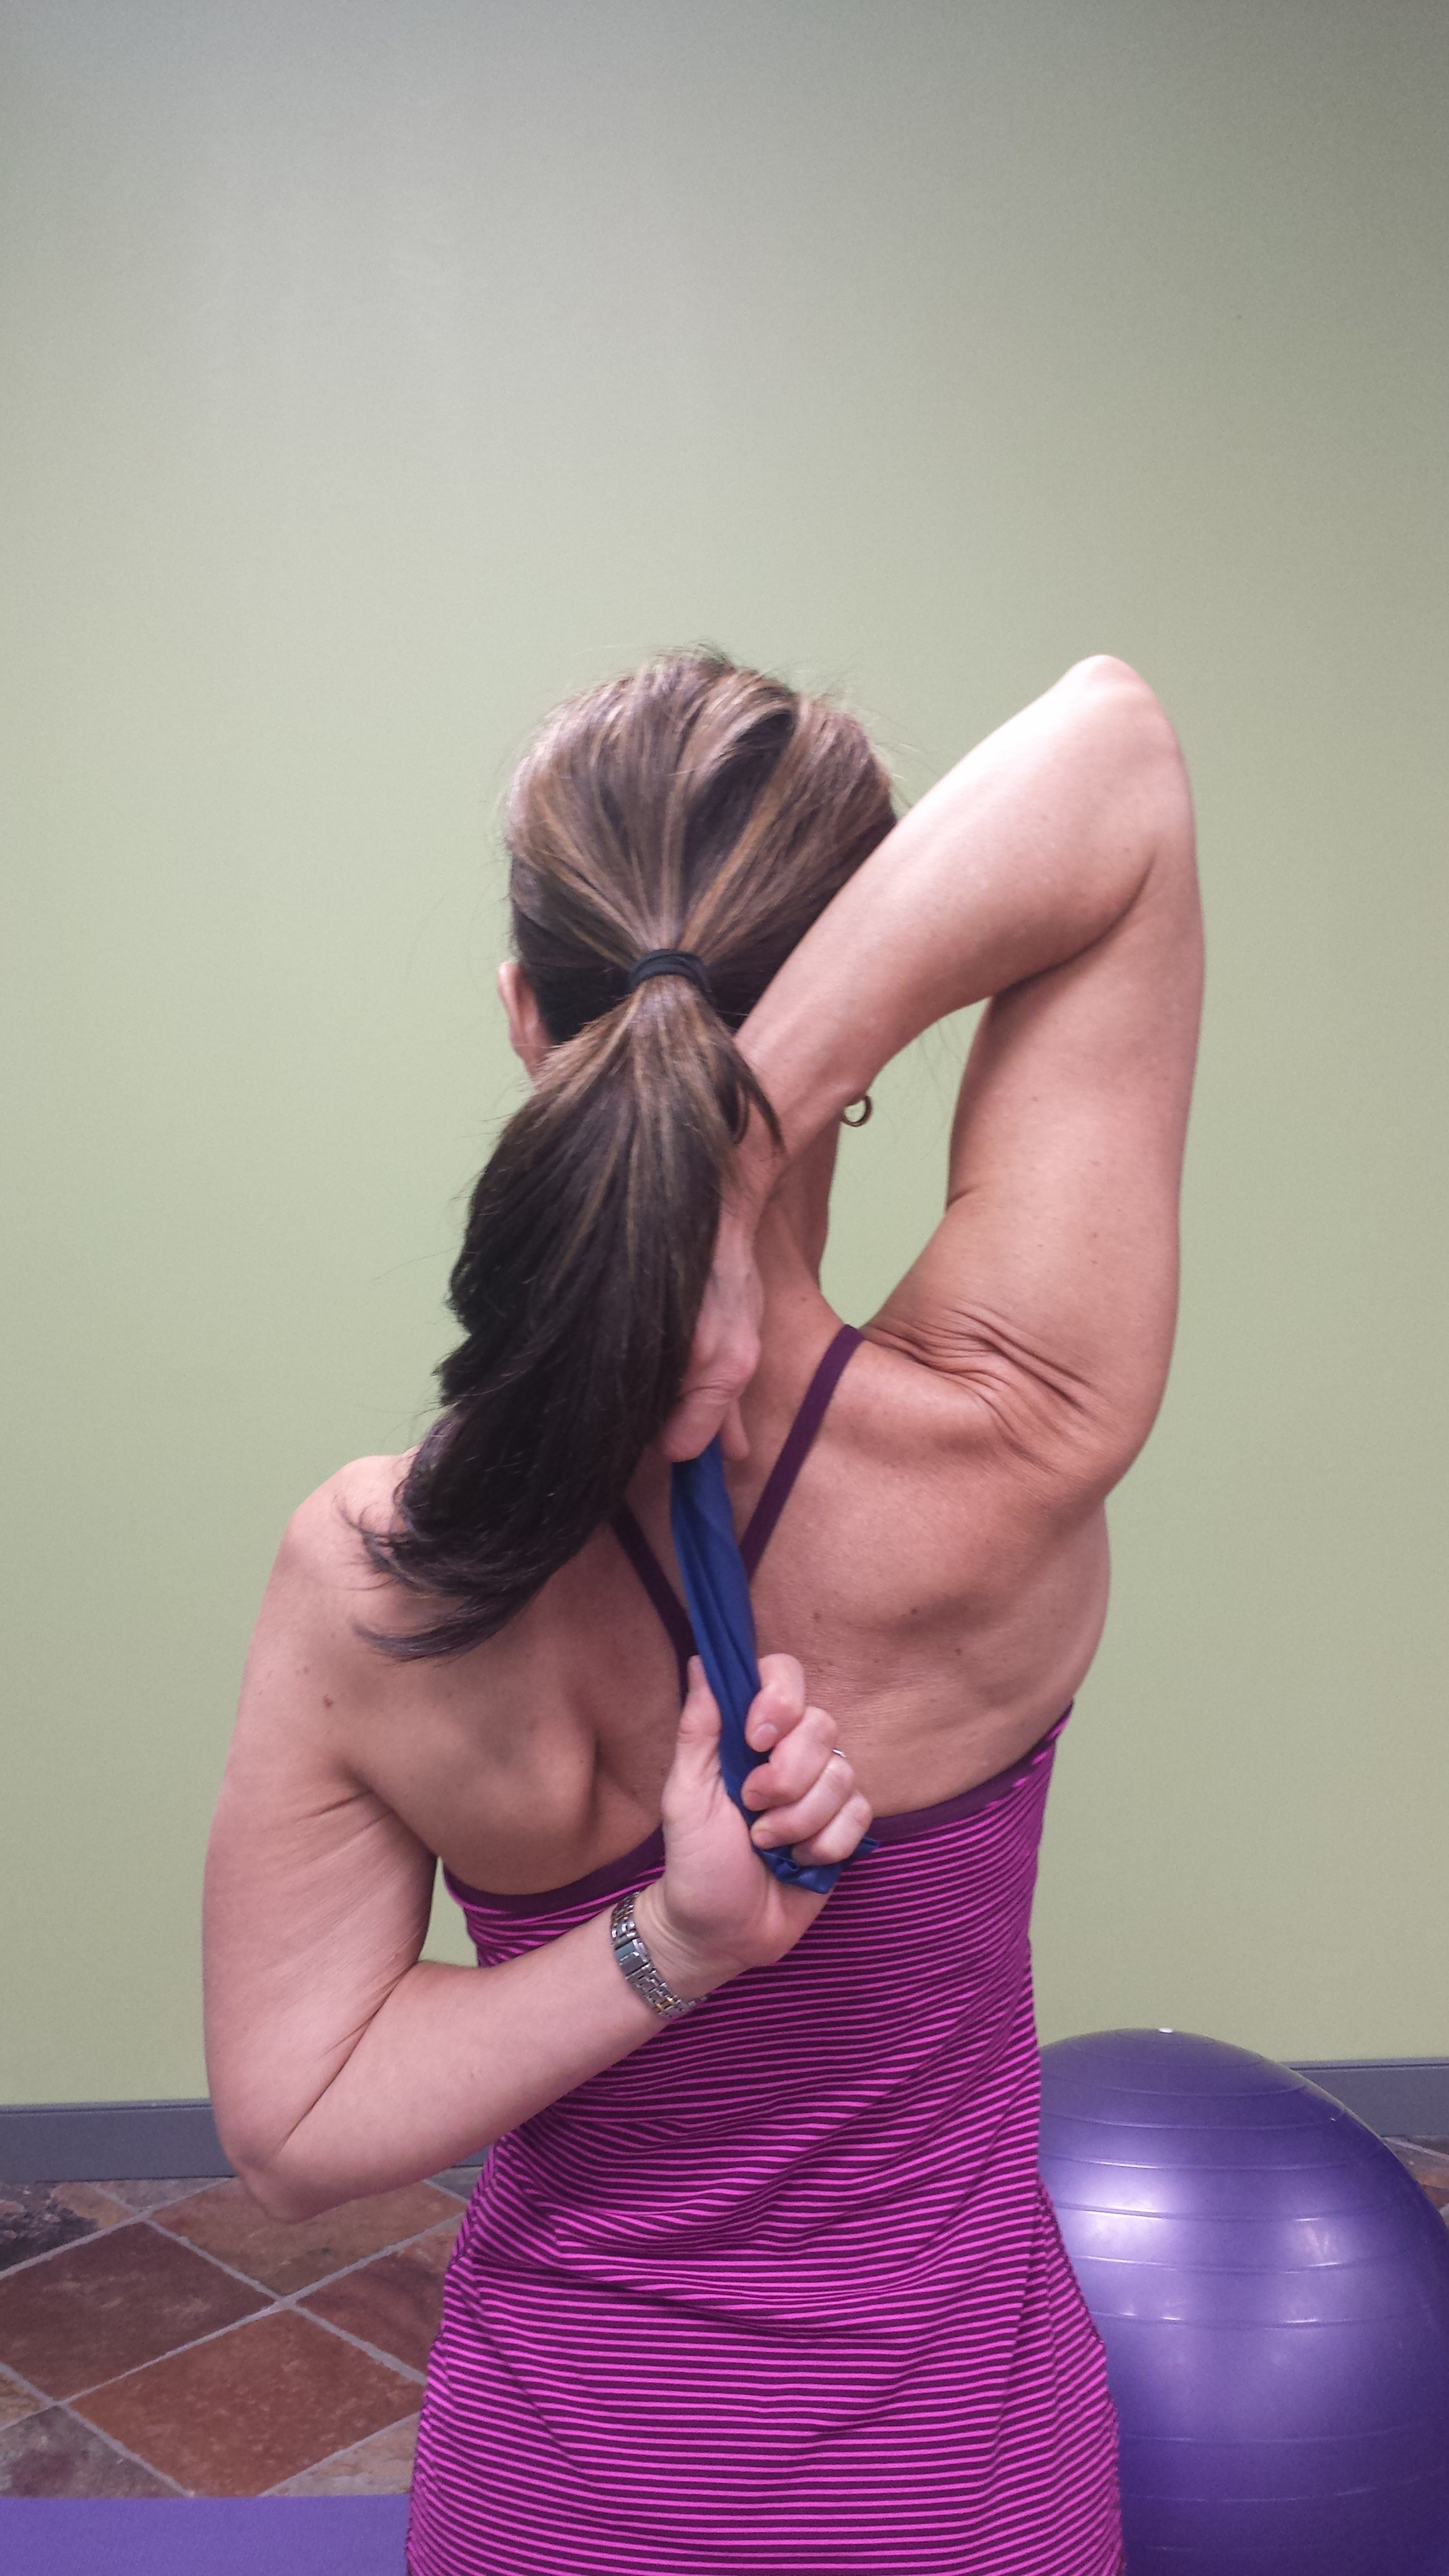 Denise demonstrating a modified shoulder range of motion technique. Her hands are behind her back; one arm reaching over her right shoulder, one reaching up from her left side waist. She is holding a band between her two hands instead of clasping her hands.